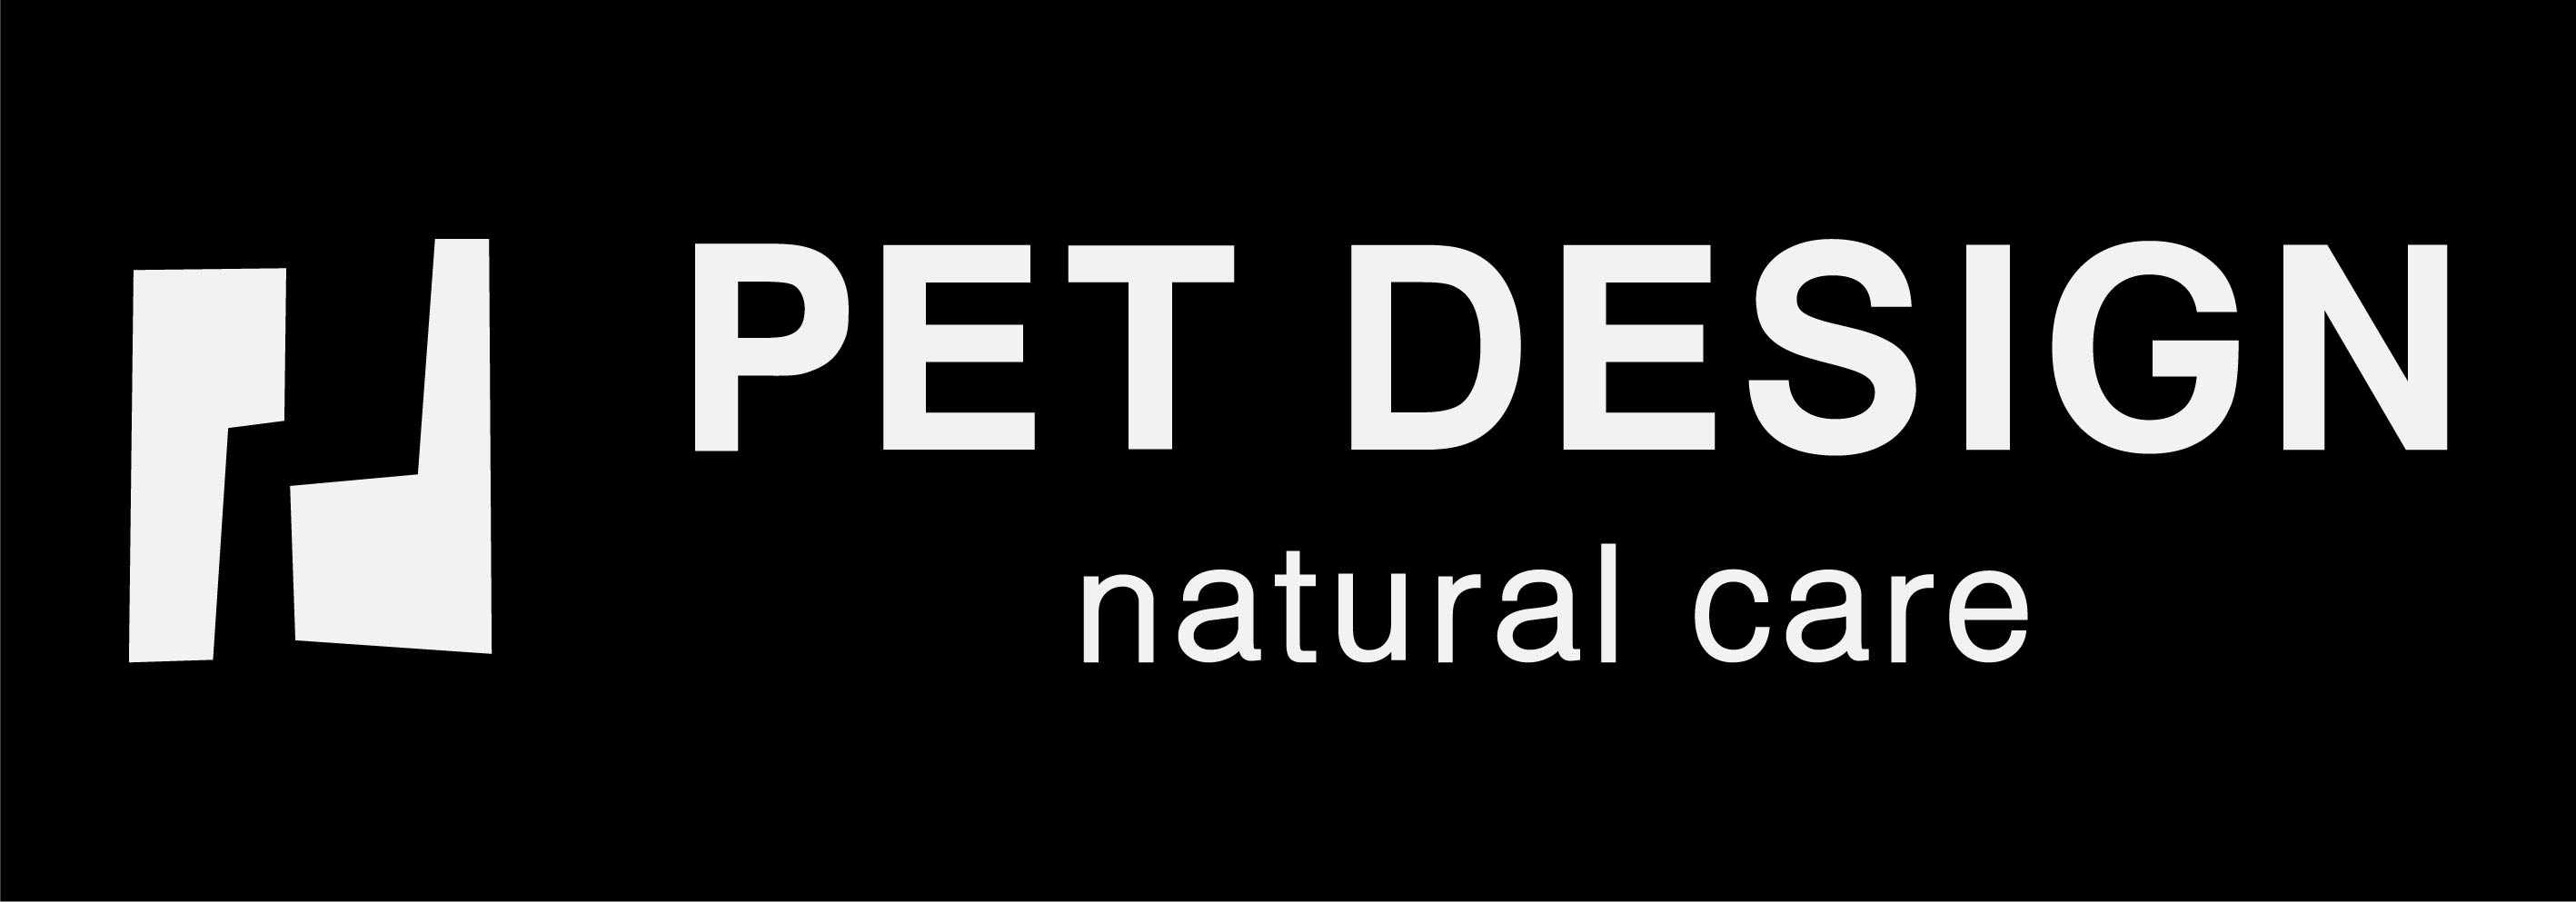 PET DESIGN natural careのロゴ画像